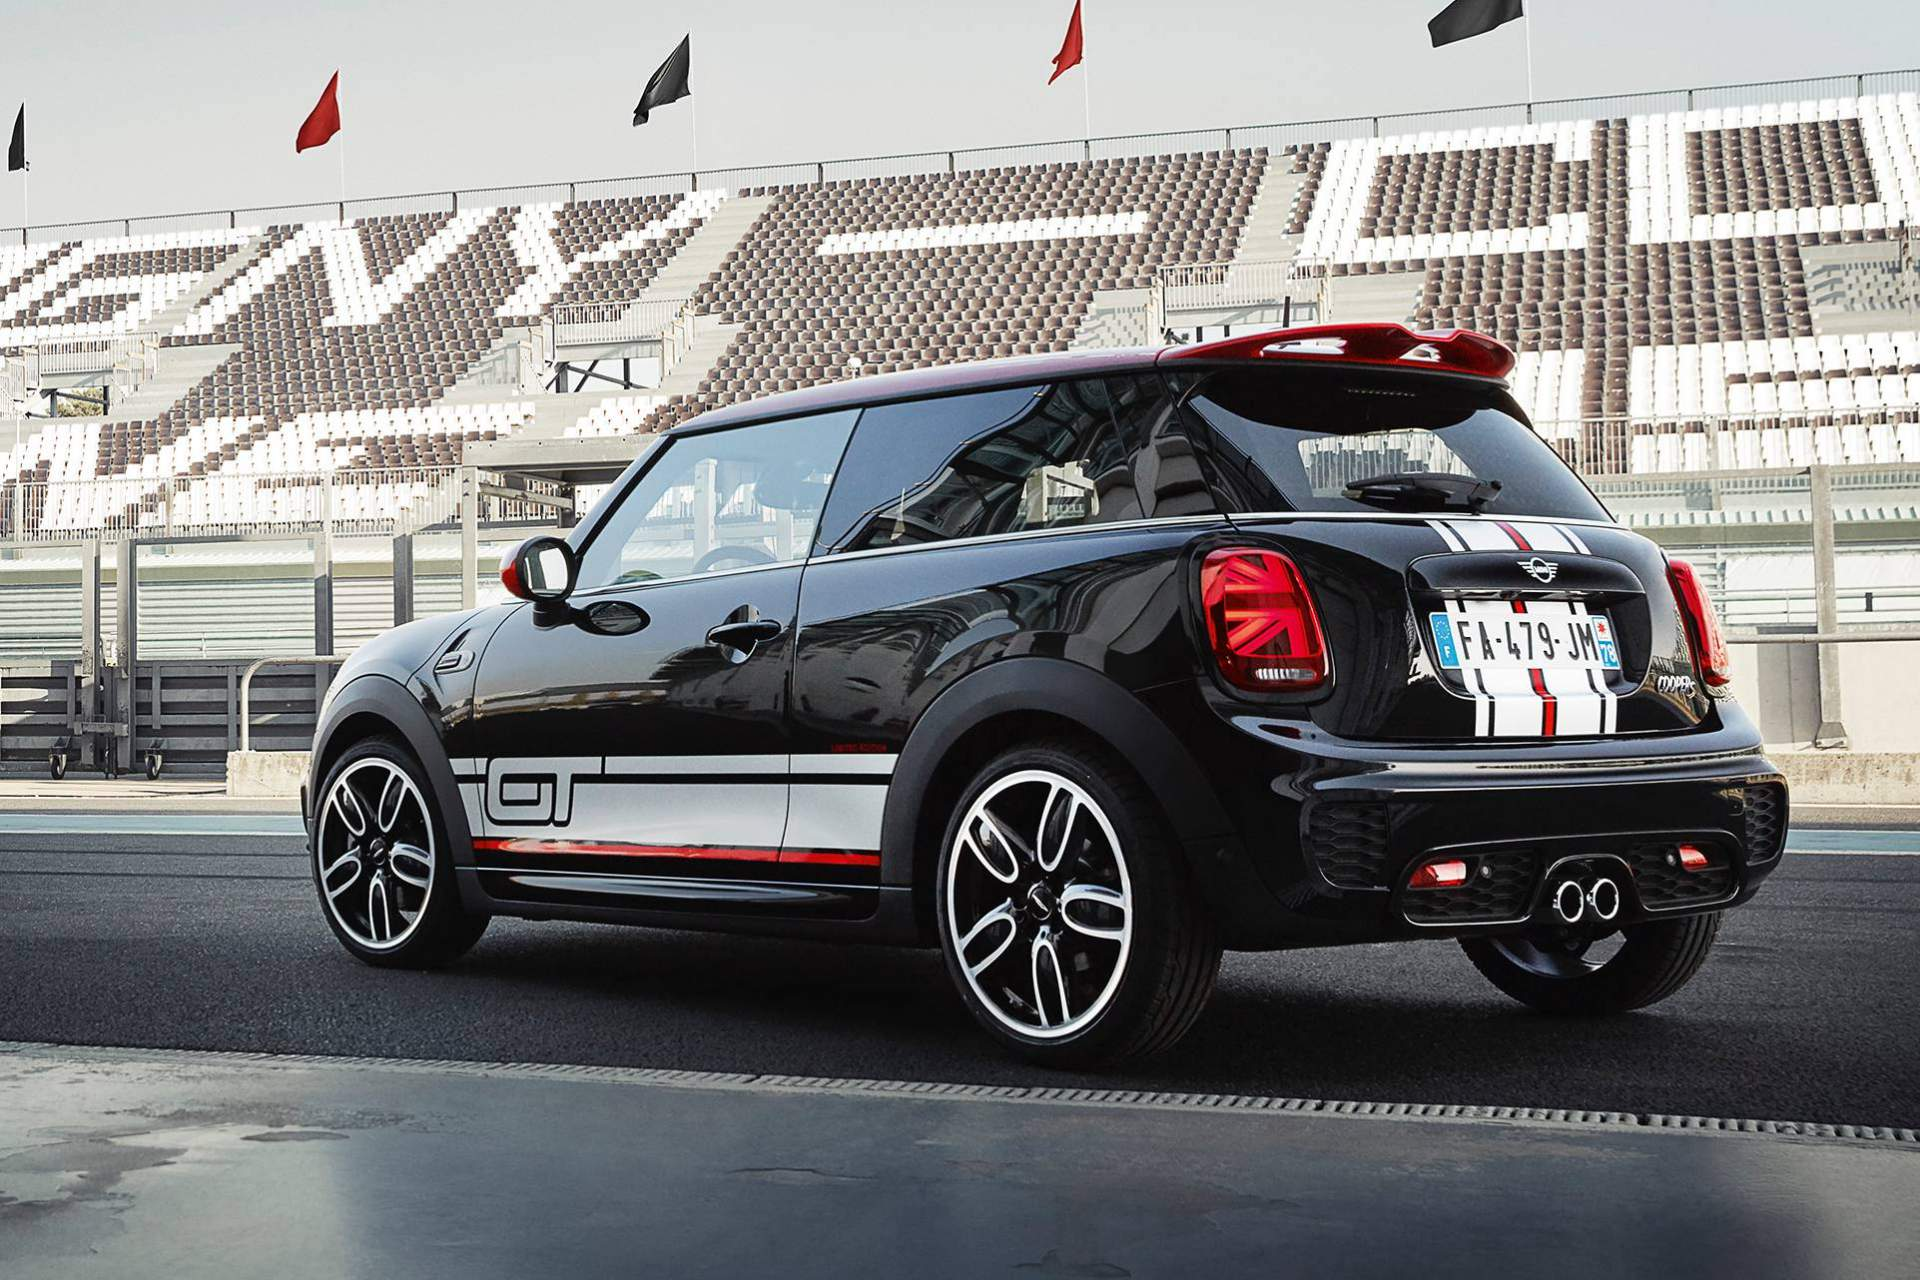 France Car Brand >> New Limited-Run Mini Cooper S GT Edition Pays Tribute To Classic 1275 GT | Carscoops